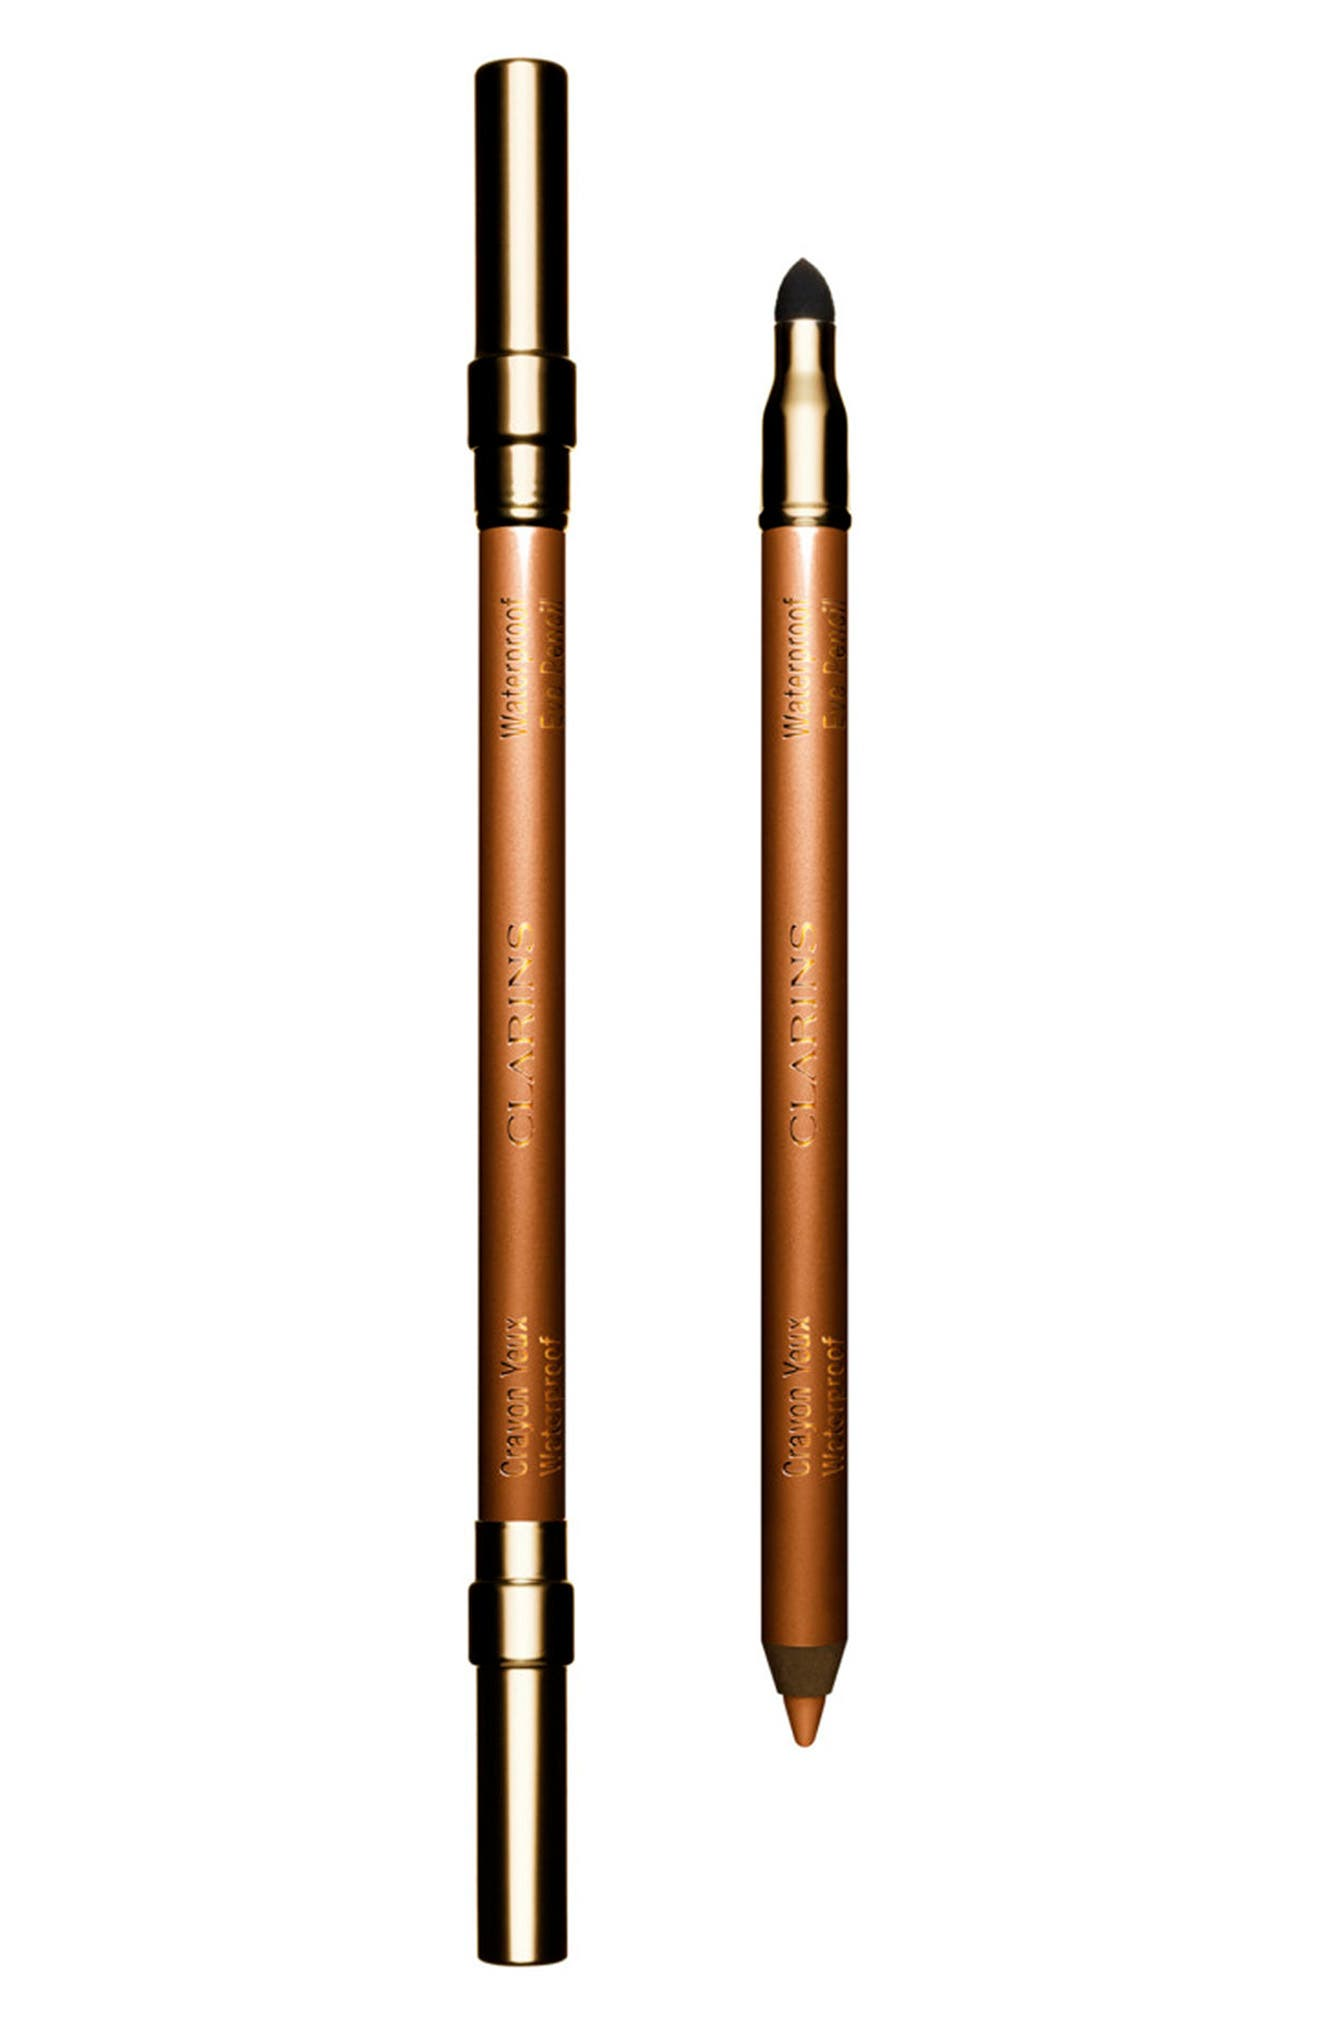 Alternate Image 1 Selected - Clarins Waterproof Eye Pencil (Limited Edition)